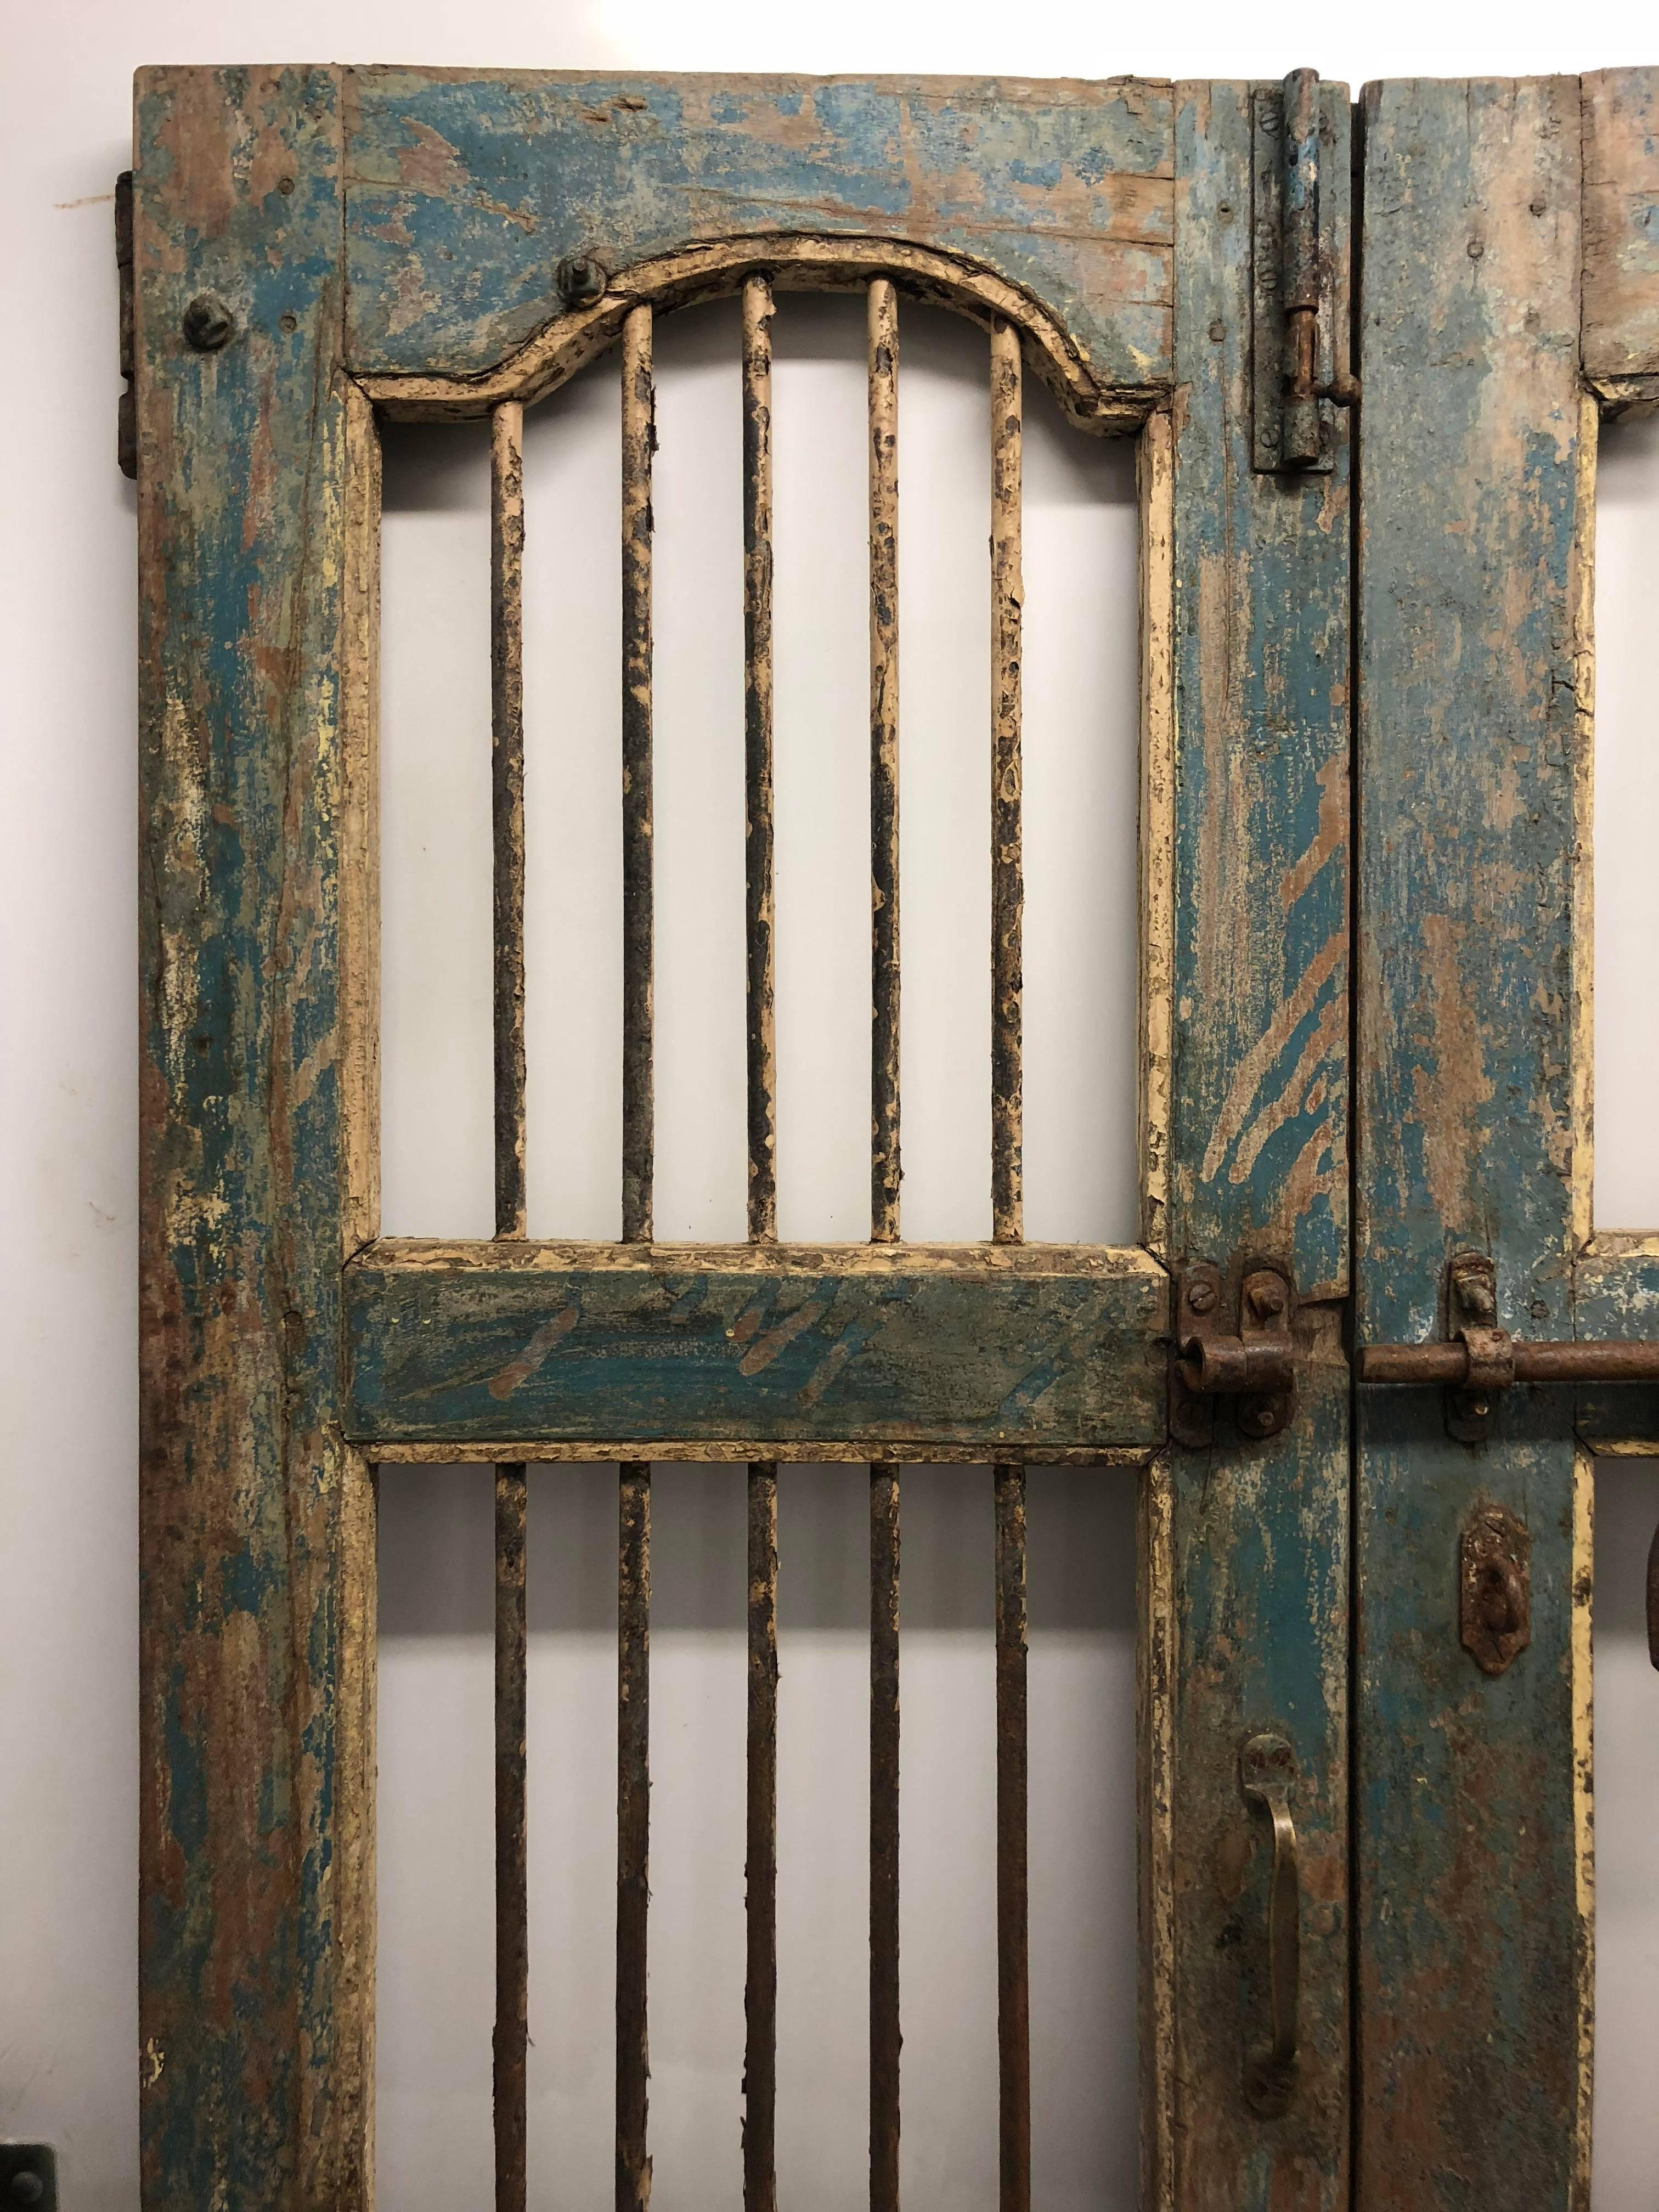 Pair of Painted Indian Gated Doors In Good Condition For Sale In South&ton NY & Pair of Painted Indian Gated Doors For Sale at 1stdibs